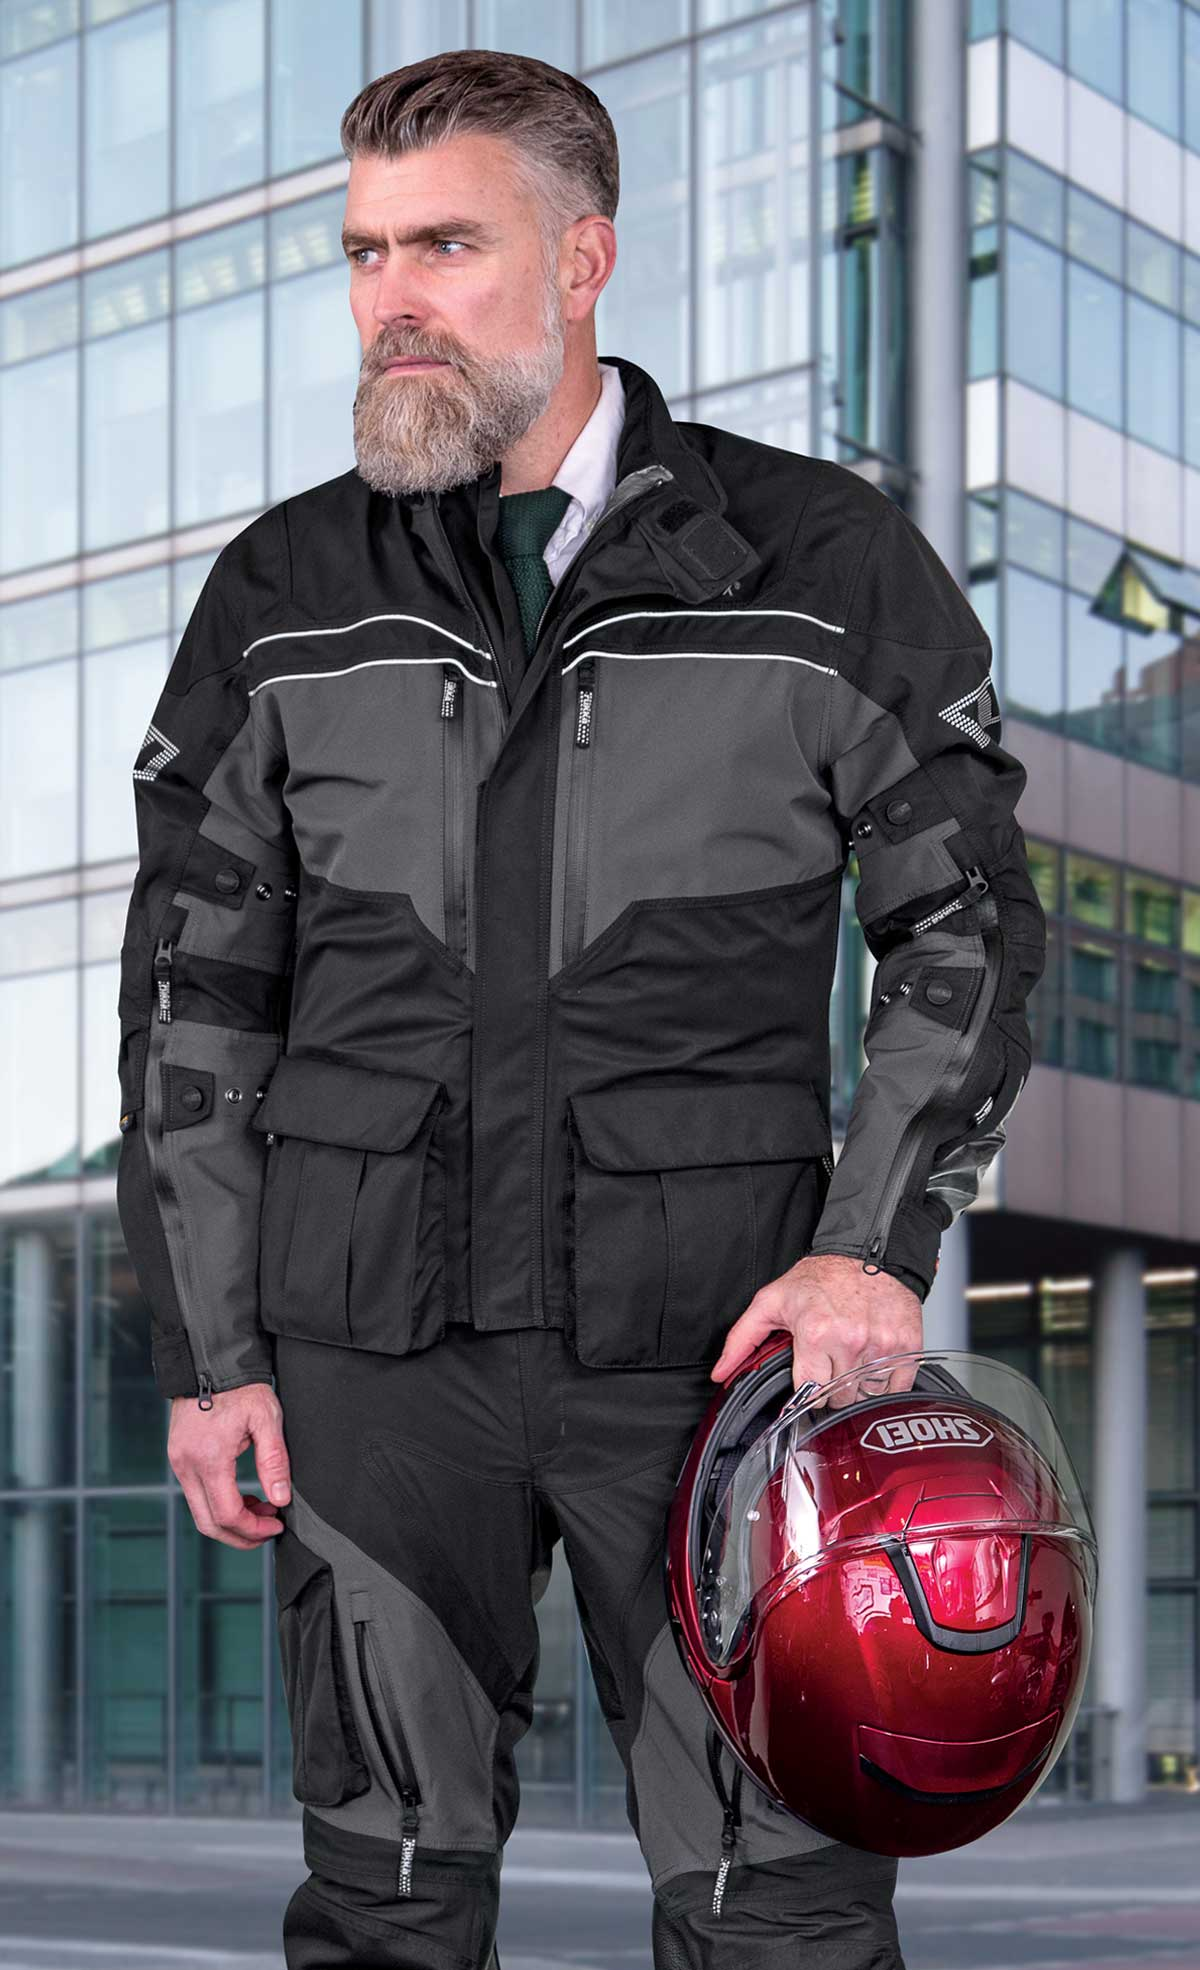 Rukka Overpass jacket and pant lifestyle